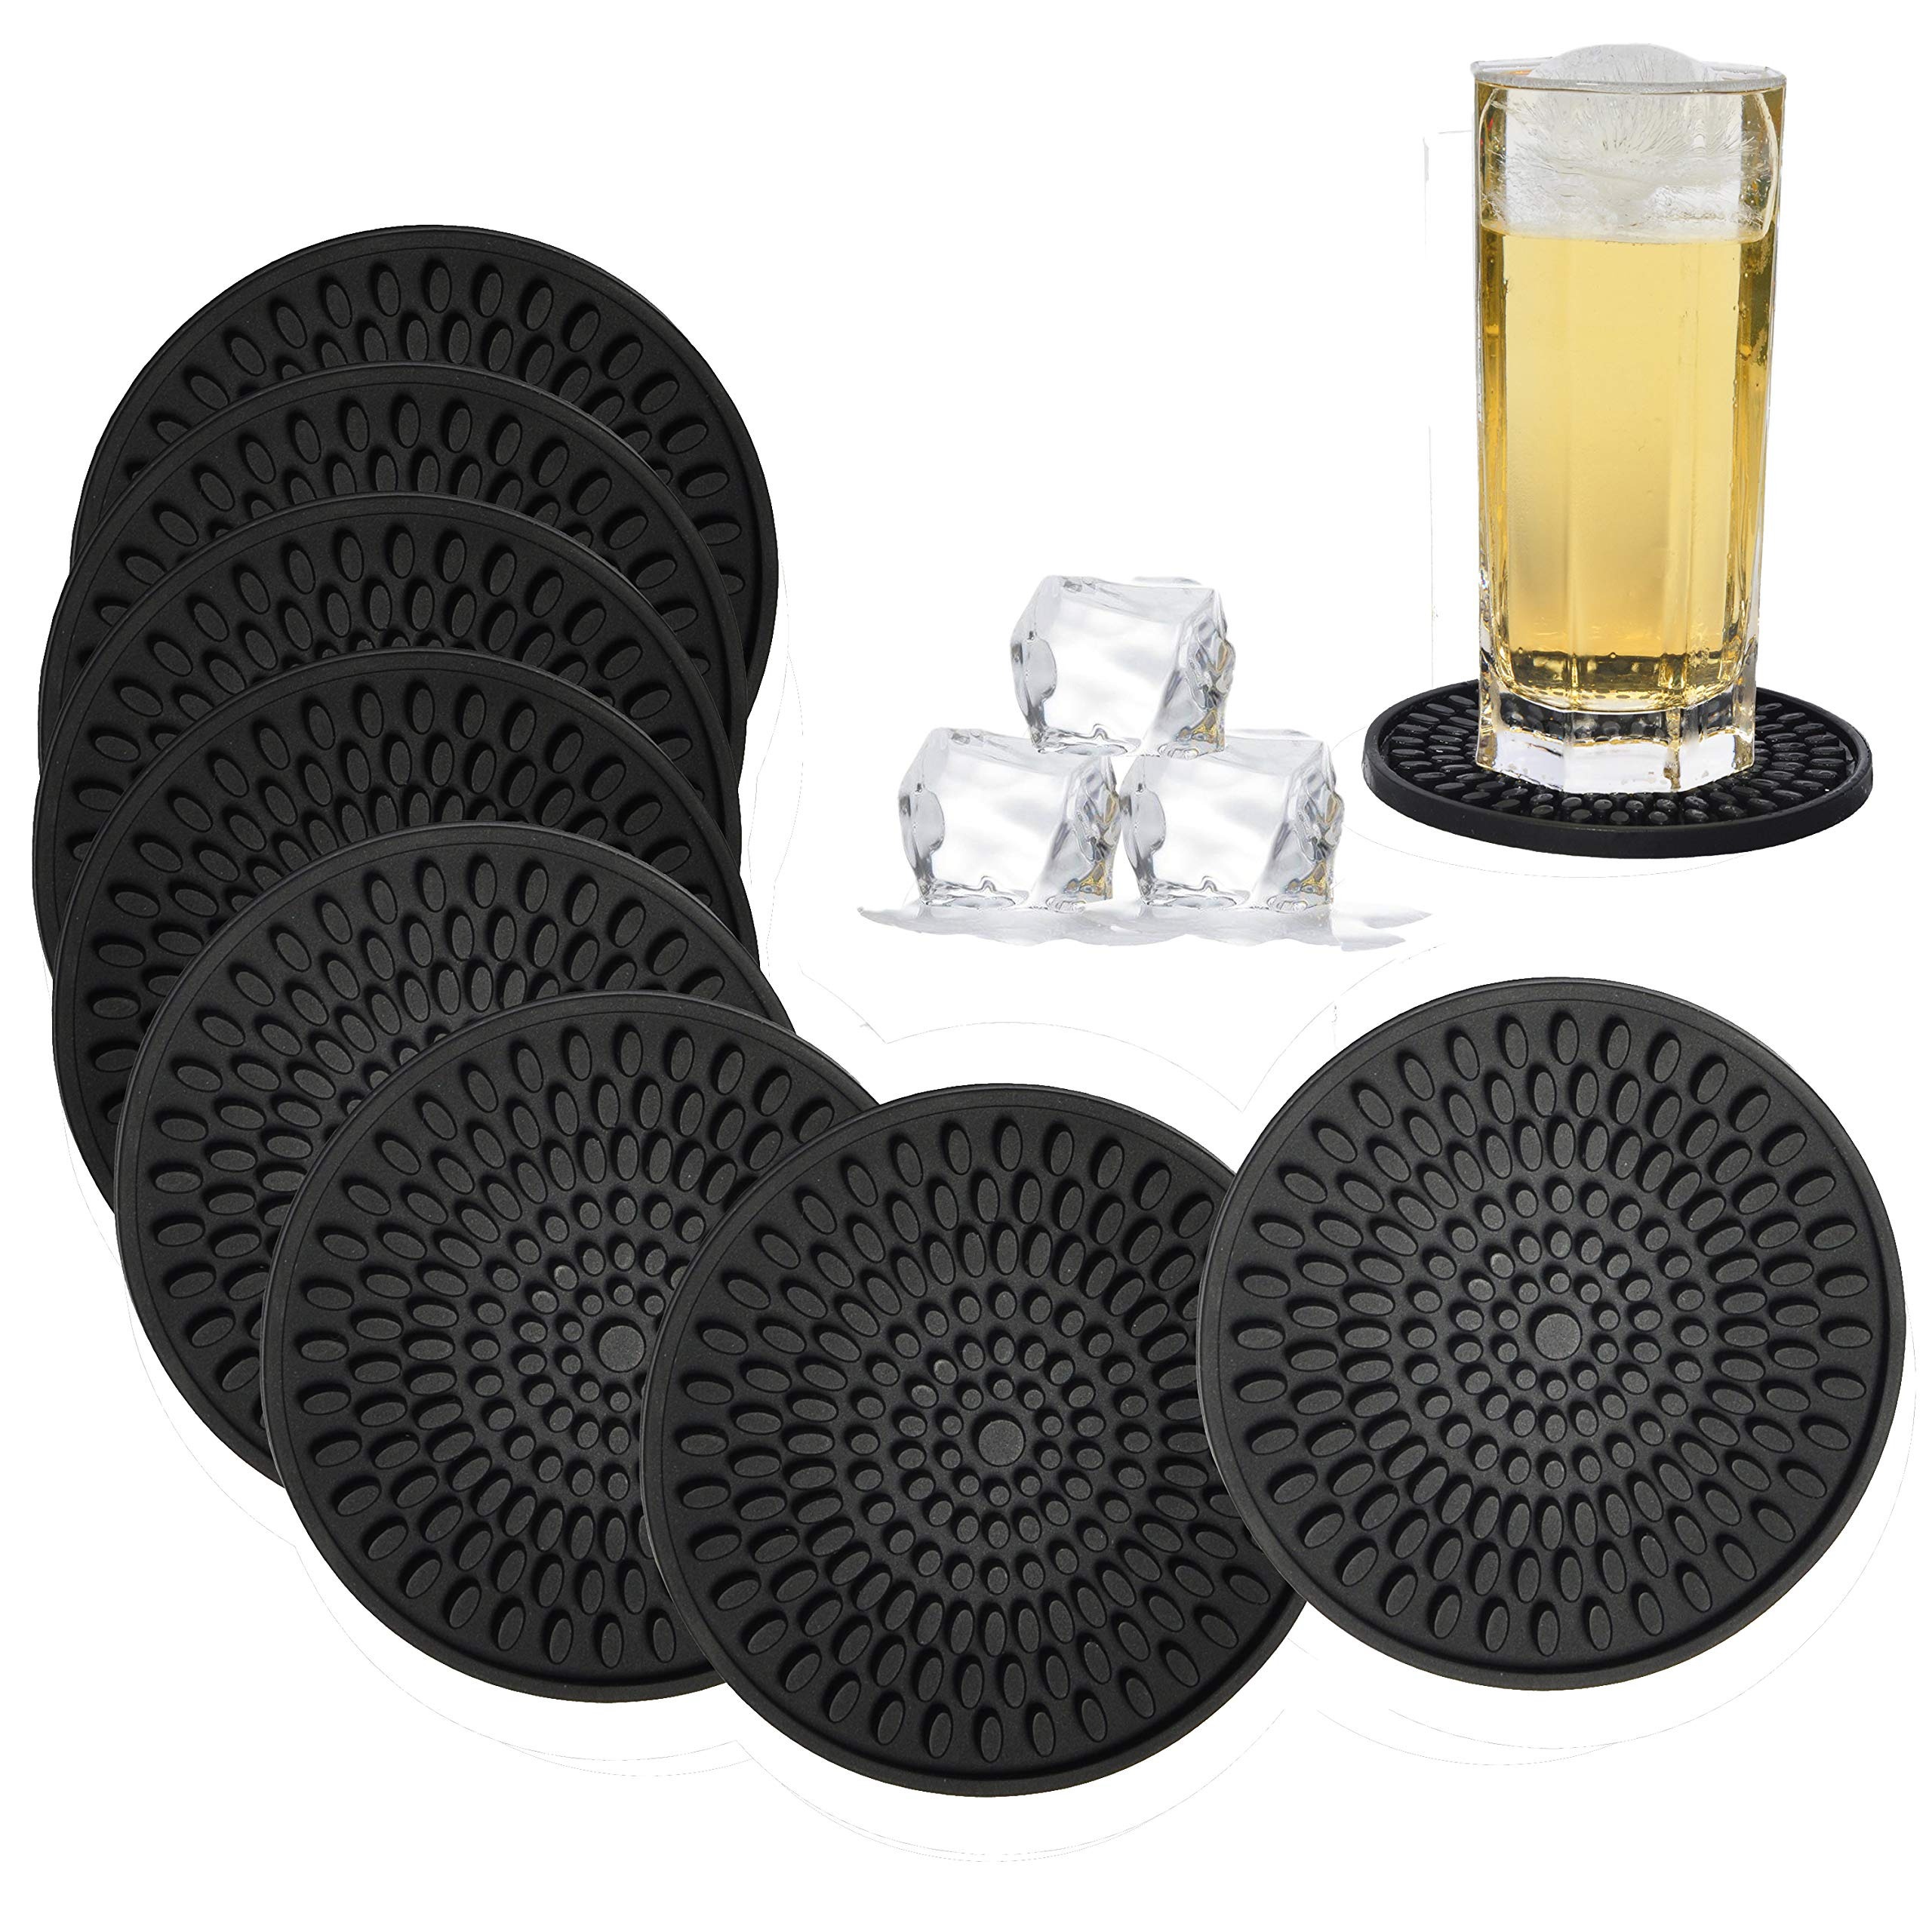 Coasters for Drinks Black, Absorbent Rubber Coaster Set, Silicone Drink Coasters for Large Mug/Cup/Bottle, Deep Tray 4.3 Inch Oval Shape Jar Opener Heat-Resistant Grips (Set of 8)